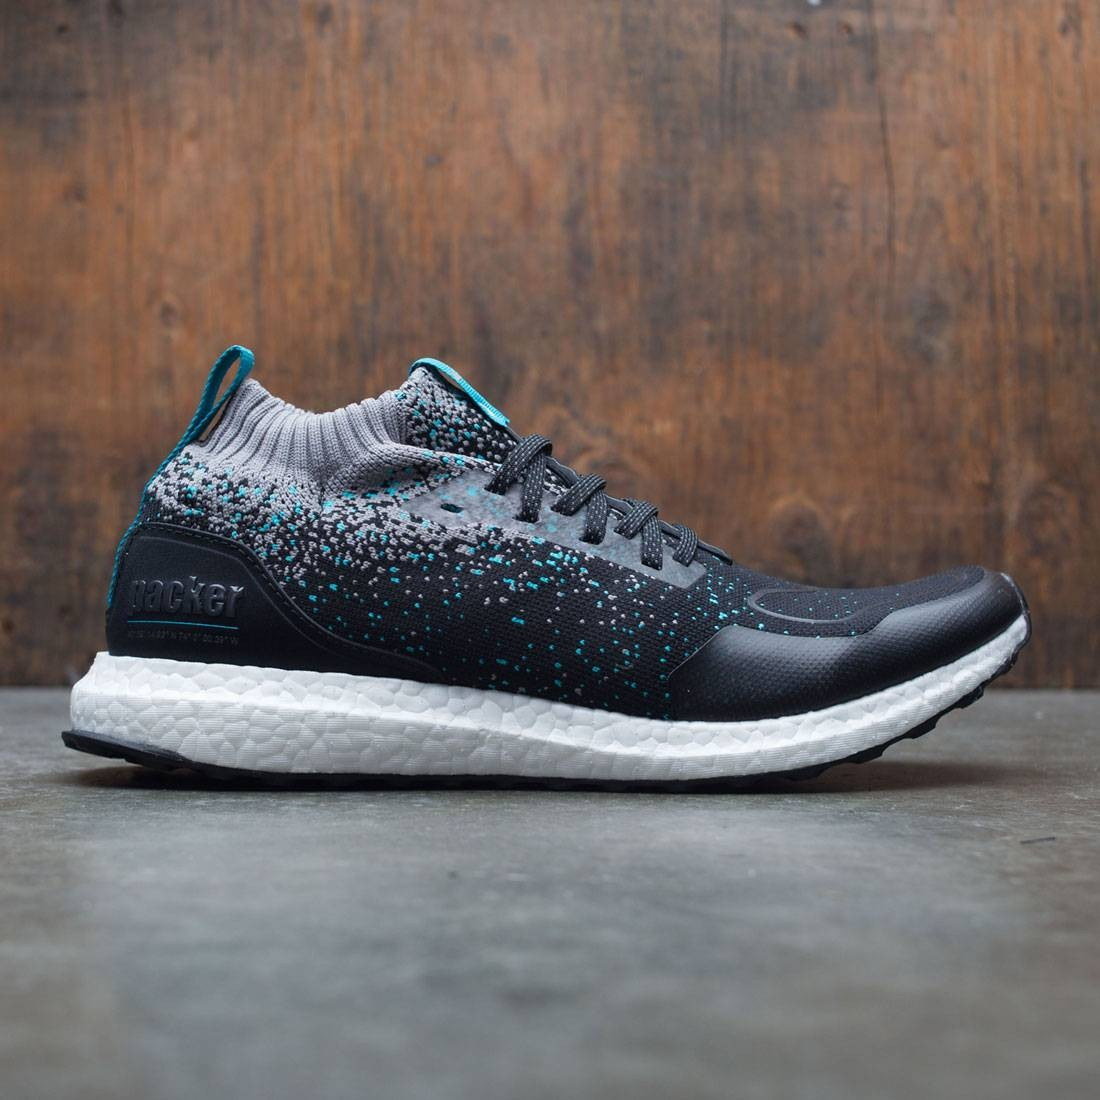 3c3d383b8796e Adidas Consortium x Packer x Solebox Men UltraBOOST Mid Sneaker Exchange  black core black energy blue